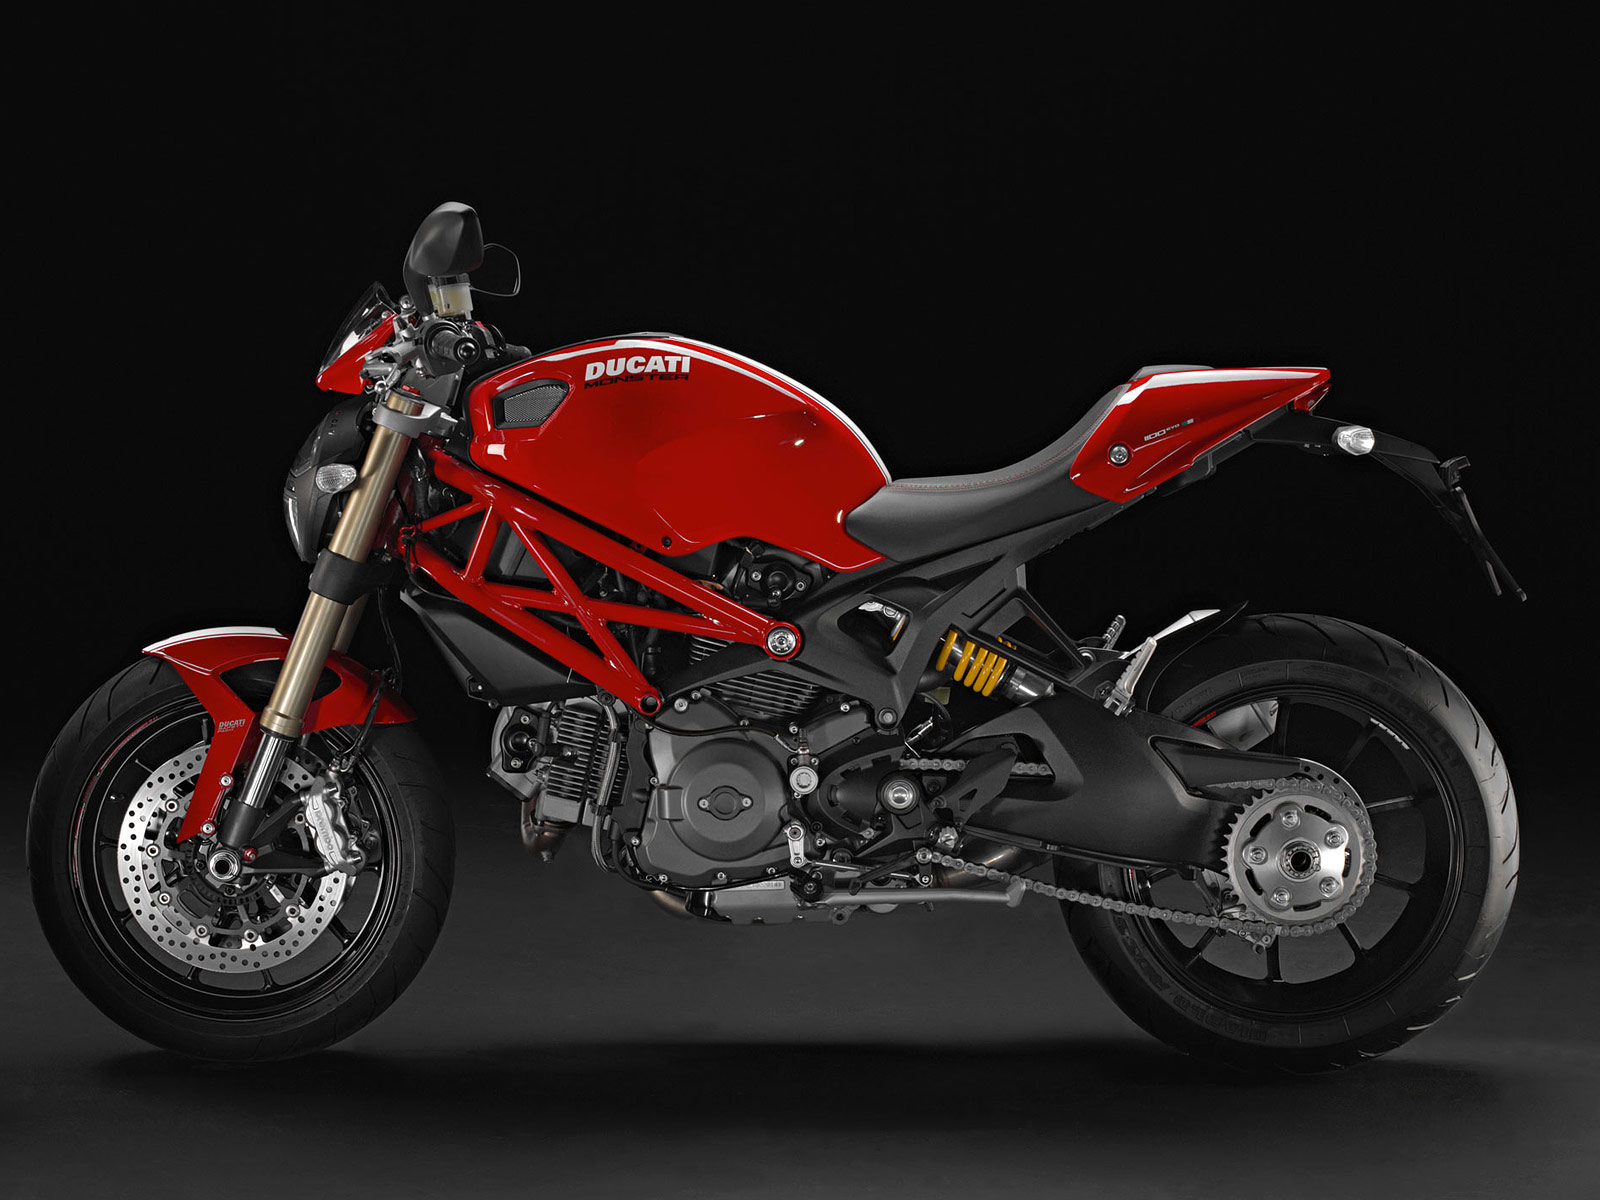 2013 ducati monster 1100 evo motorcycle insurance information. Black Bedroom Furniture Sets. Home Design Ideas